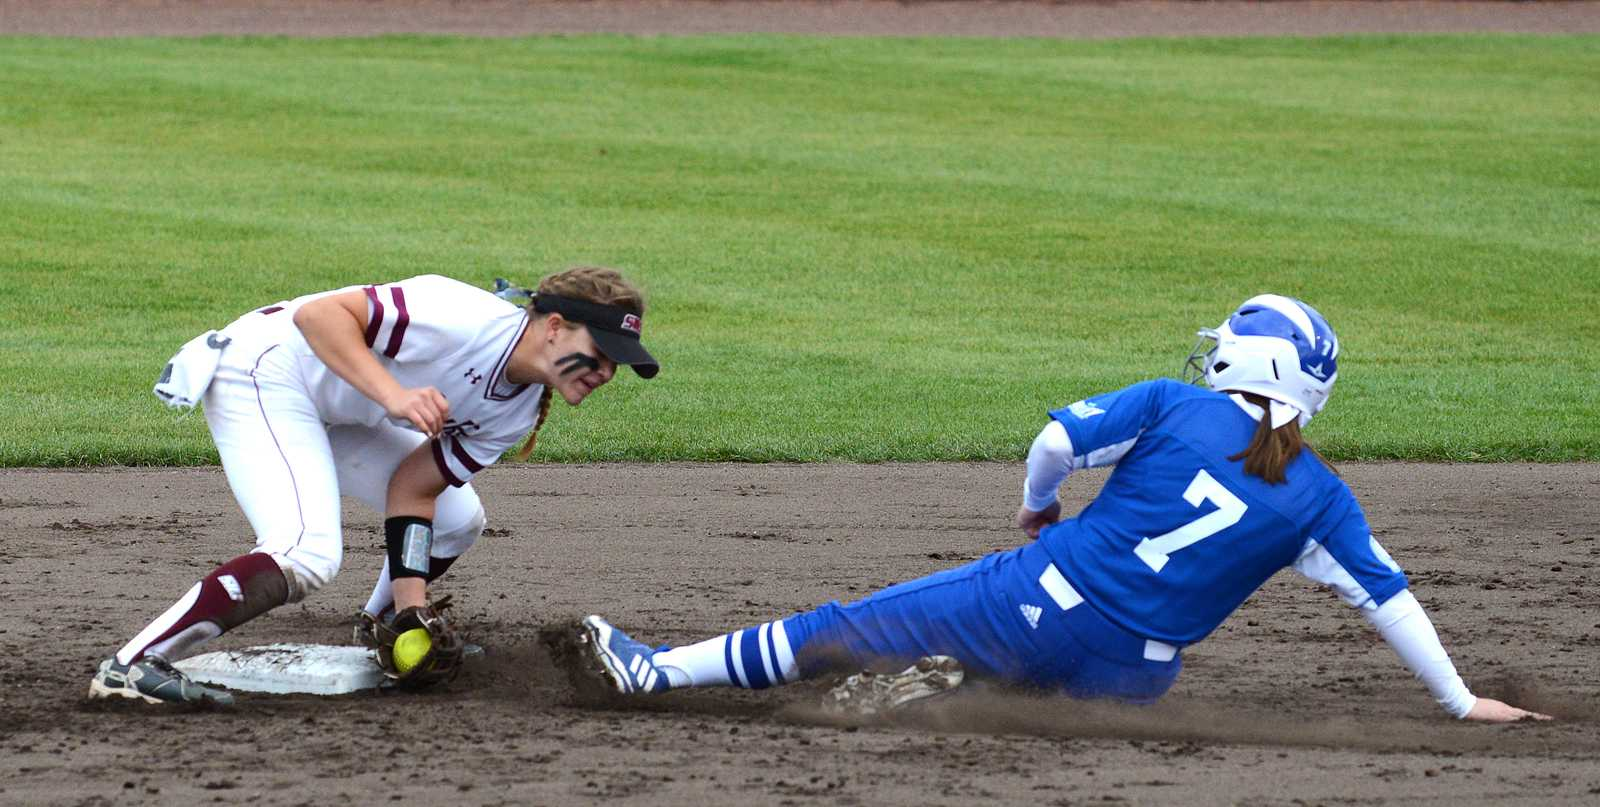 Freshman second baseman Maddy Vermejan prepares to tag out Drake sophomore Kennedy Frank during a stolen base attempt on Saturday, March 25, 2017, during SIU's 1-0 victory over Drake at Charlotte West Stadium. (Sean Carley | @SeanMCarley)